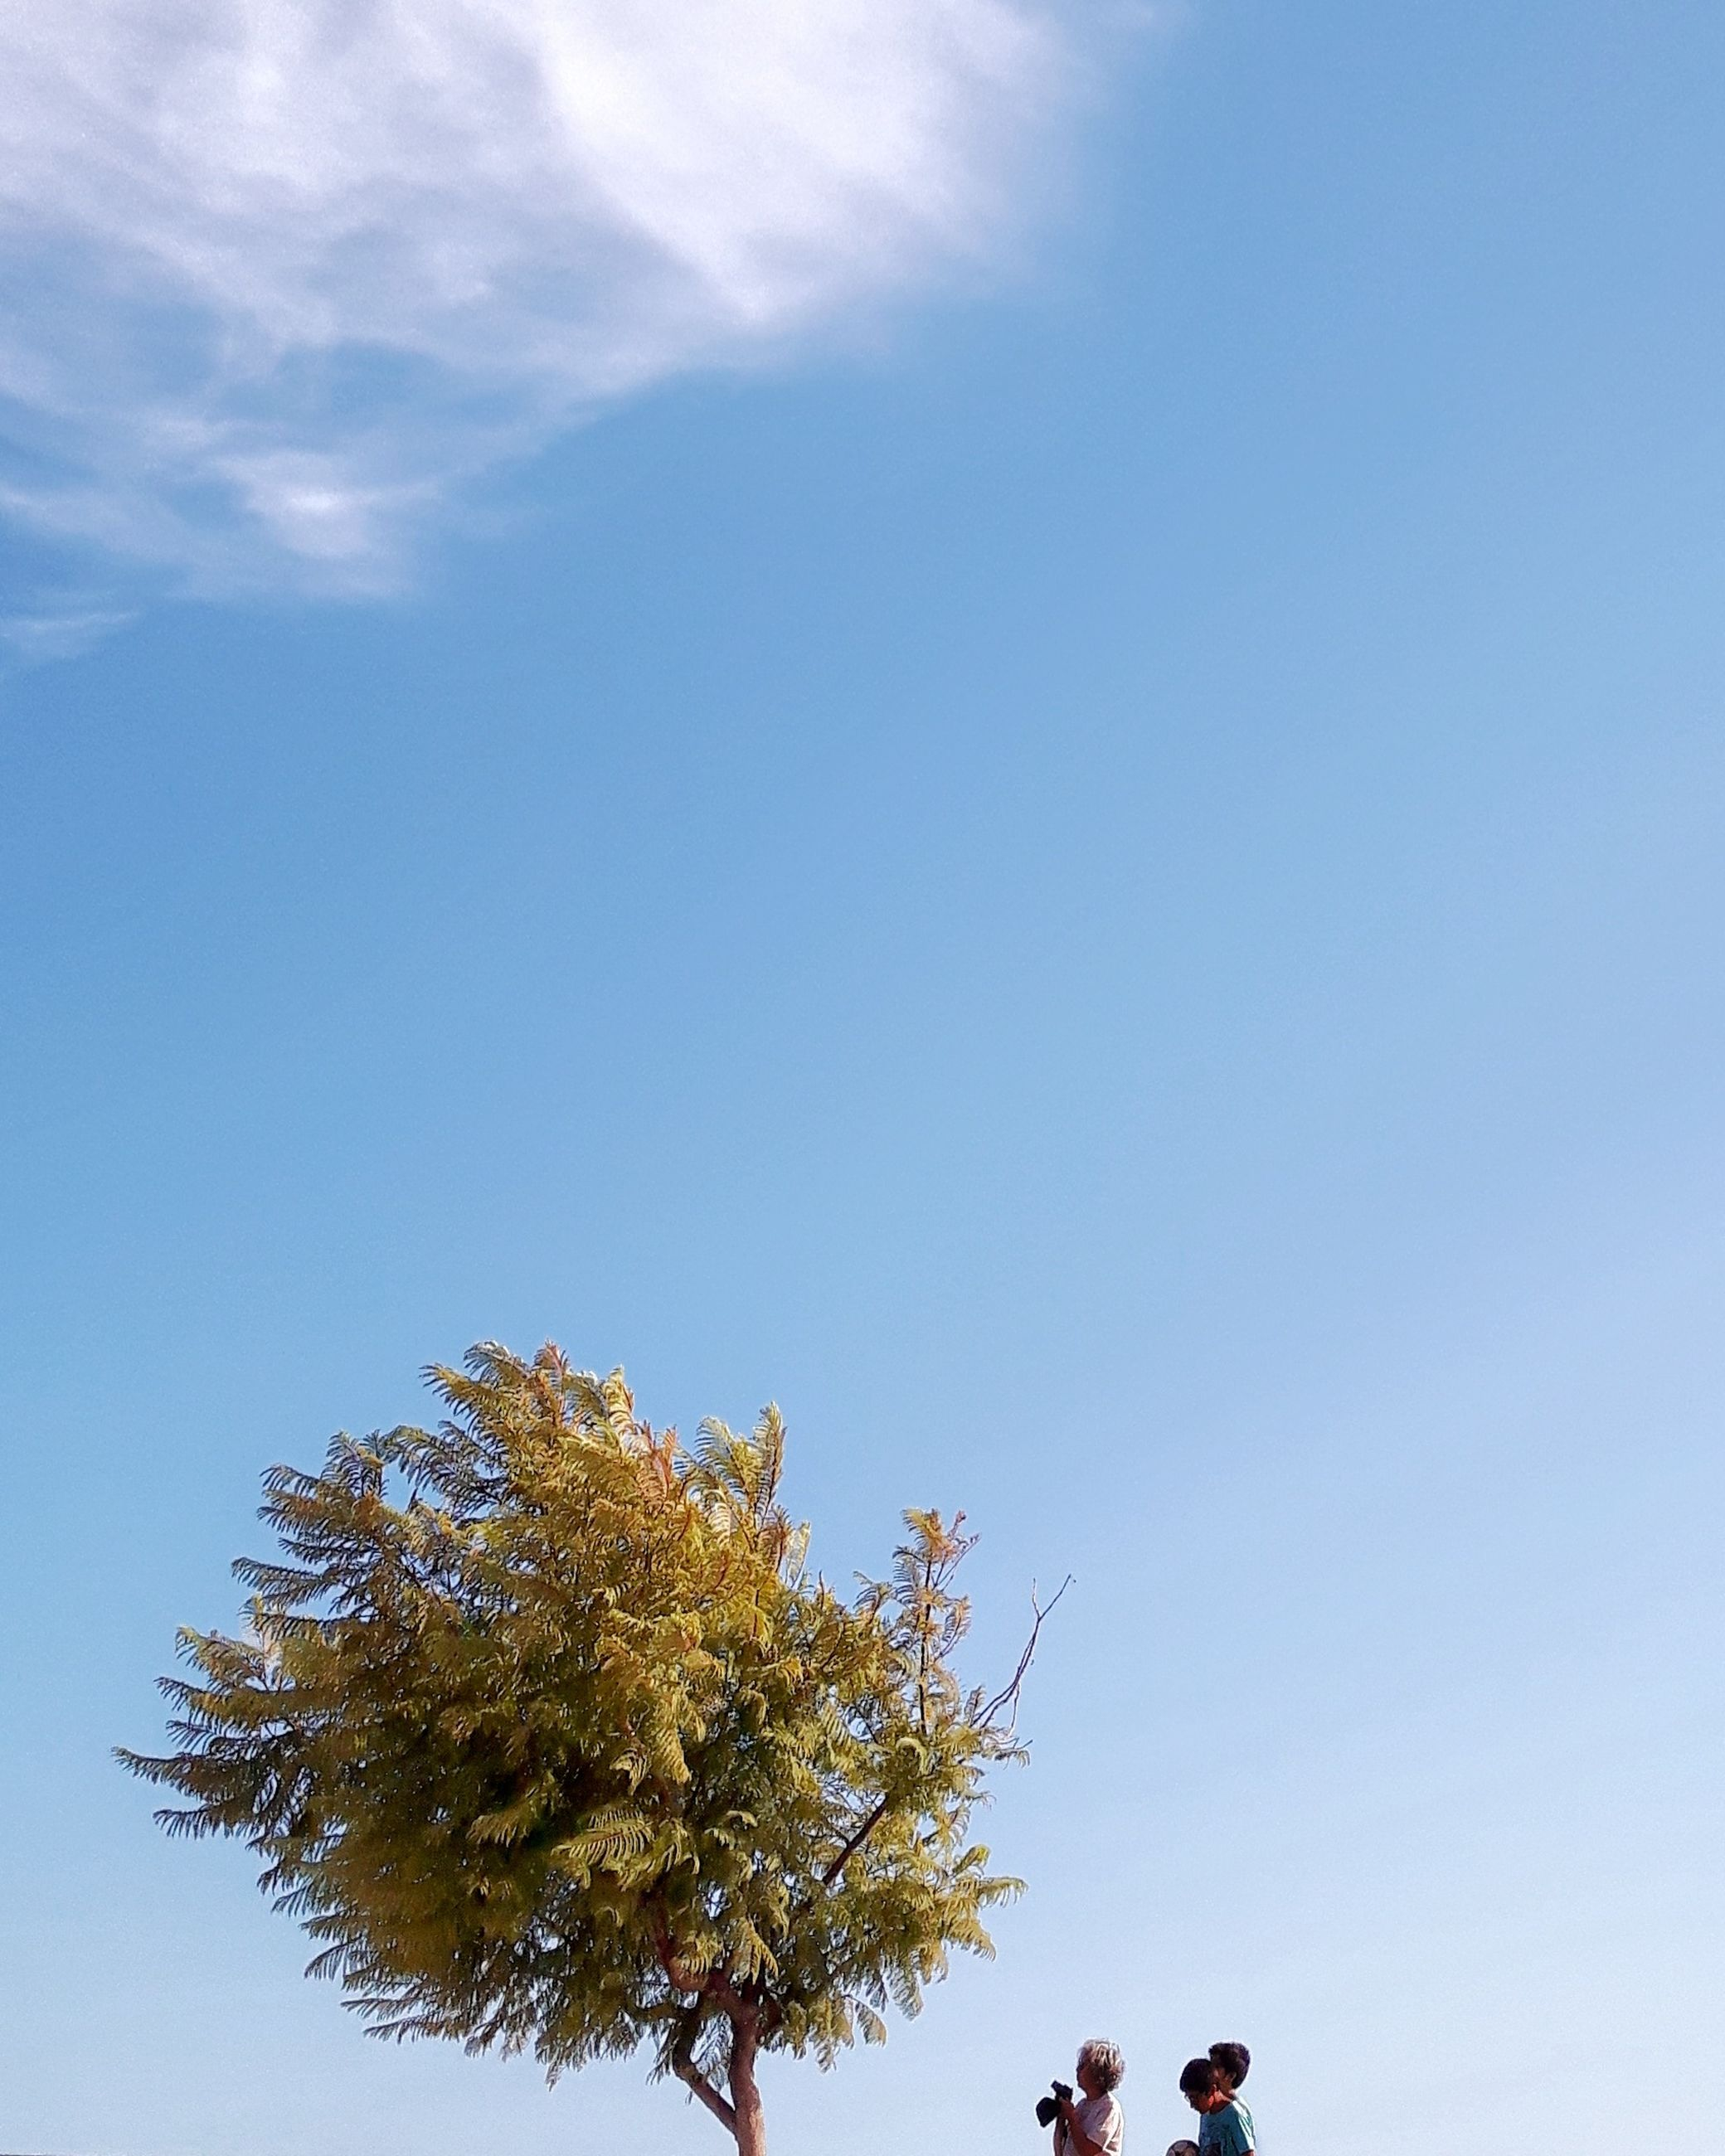 tree, nature, day, low angle view, beauty in nature, growth, leaf, outdoors, sky, blue, clear sky, no people